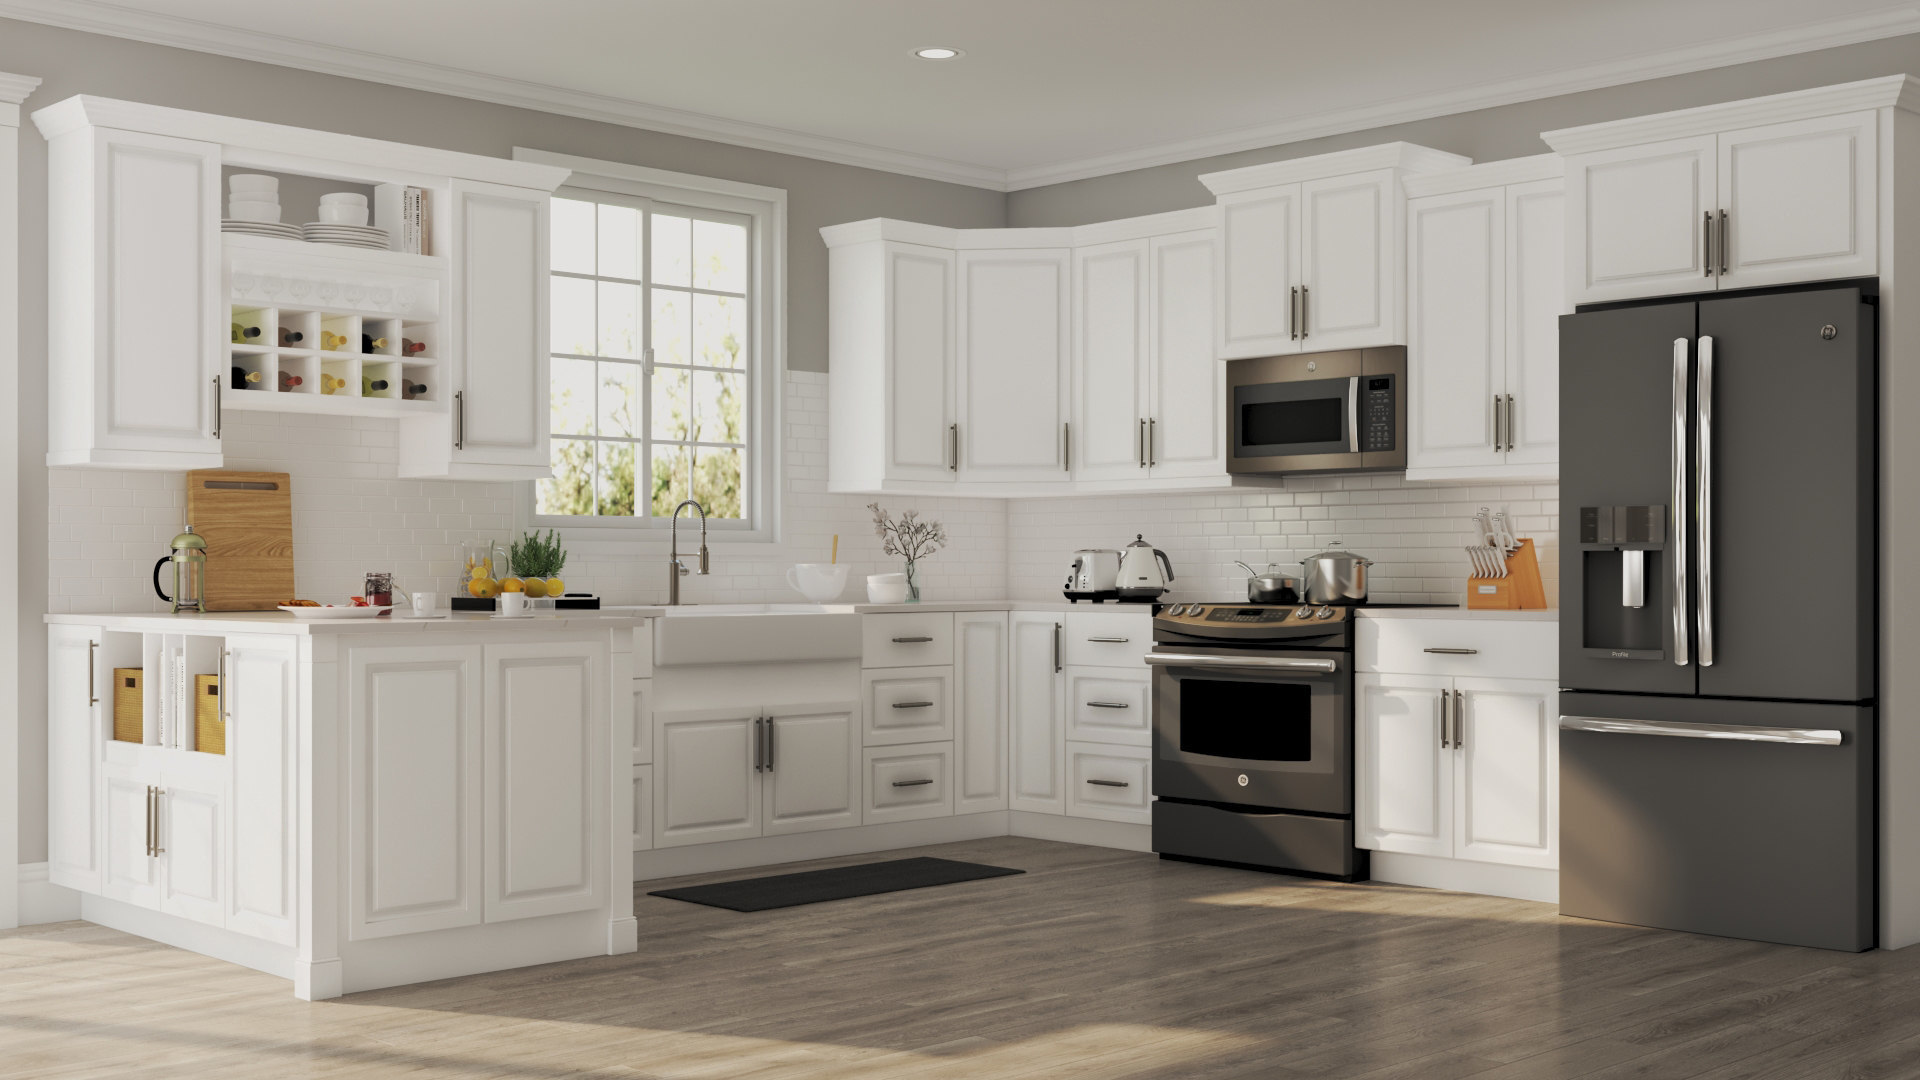 Hampton White Coordinating Cabinet Hardware Kitchen The